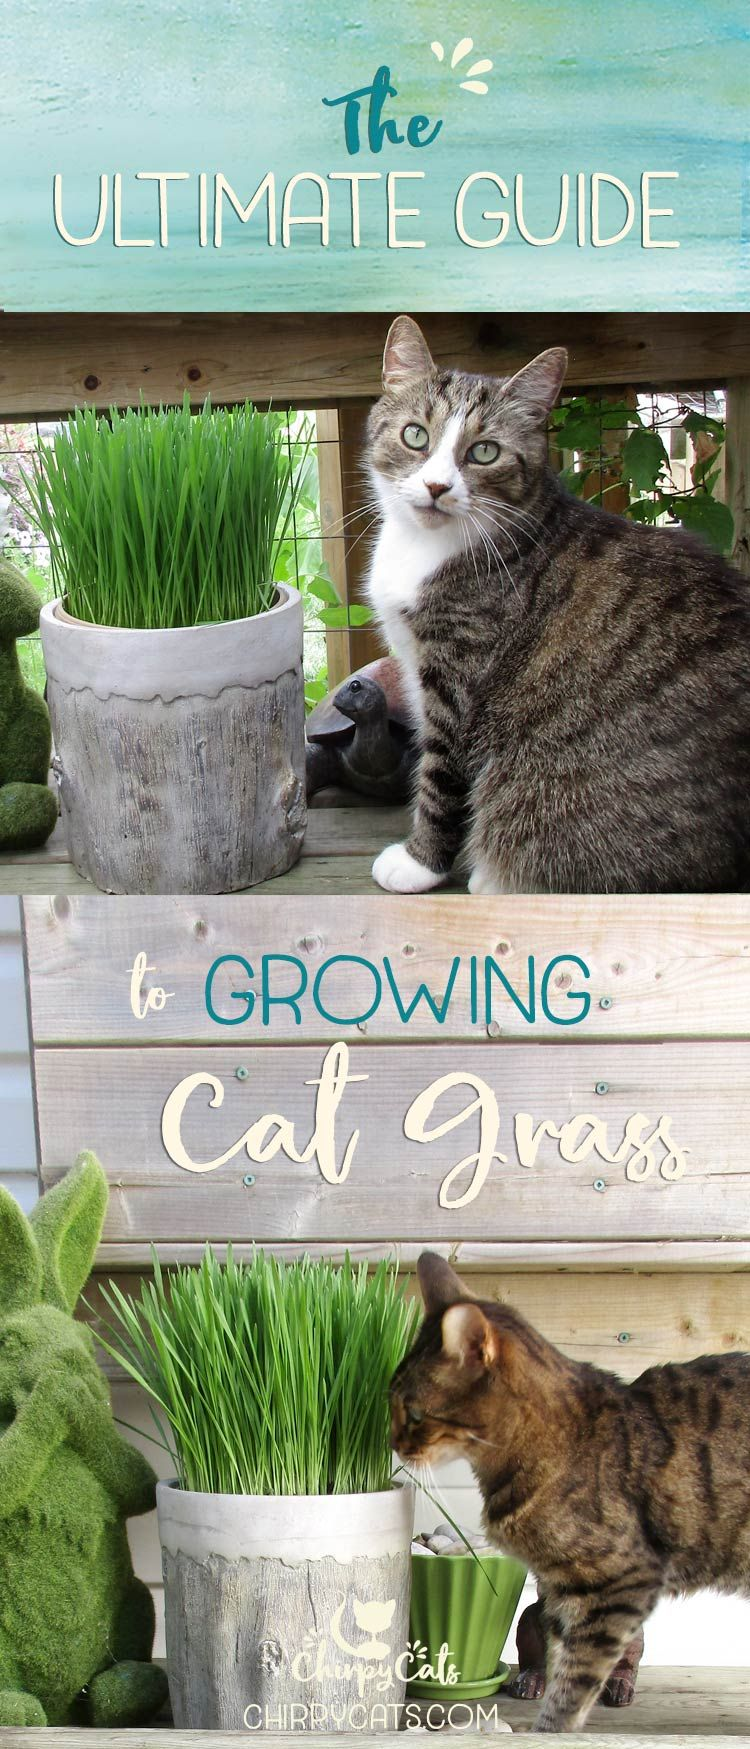 The ultimate guide to growing cat grass Cat grass indoor